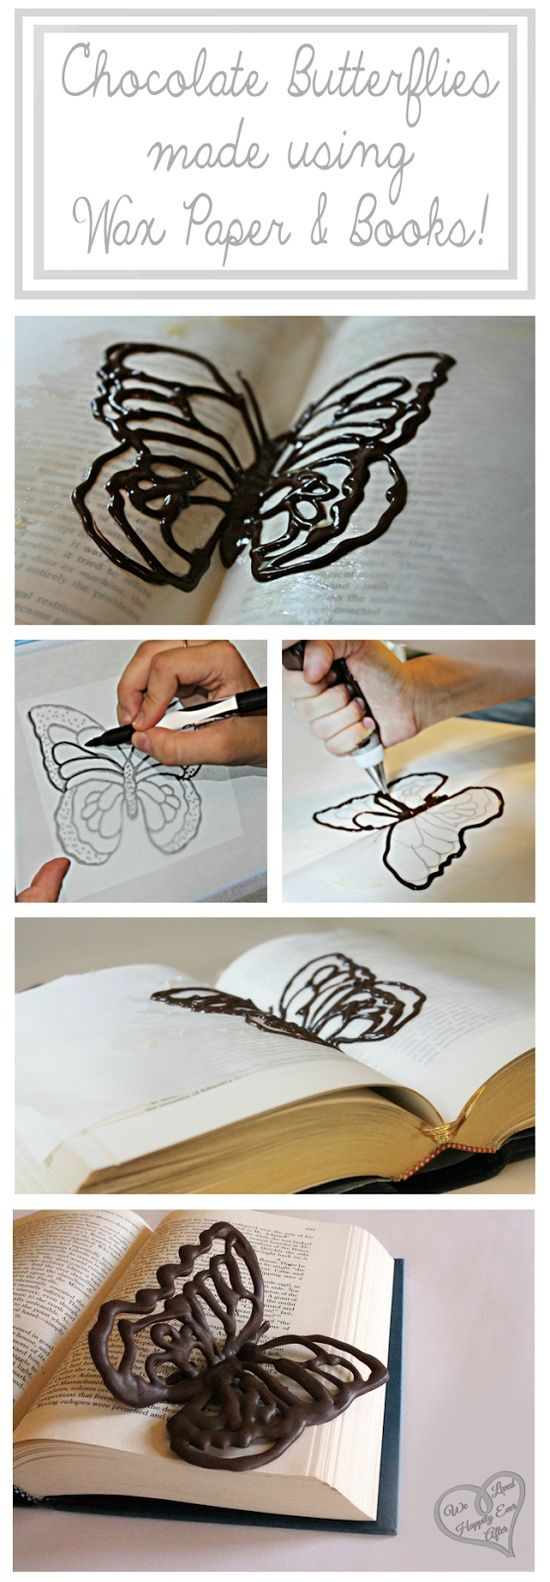 Make Chocolate Butterflies Using Wax Paper and Books! The Books give it a realistic pose. The Template/Pat